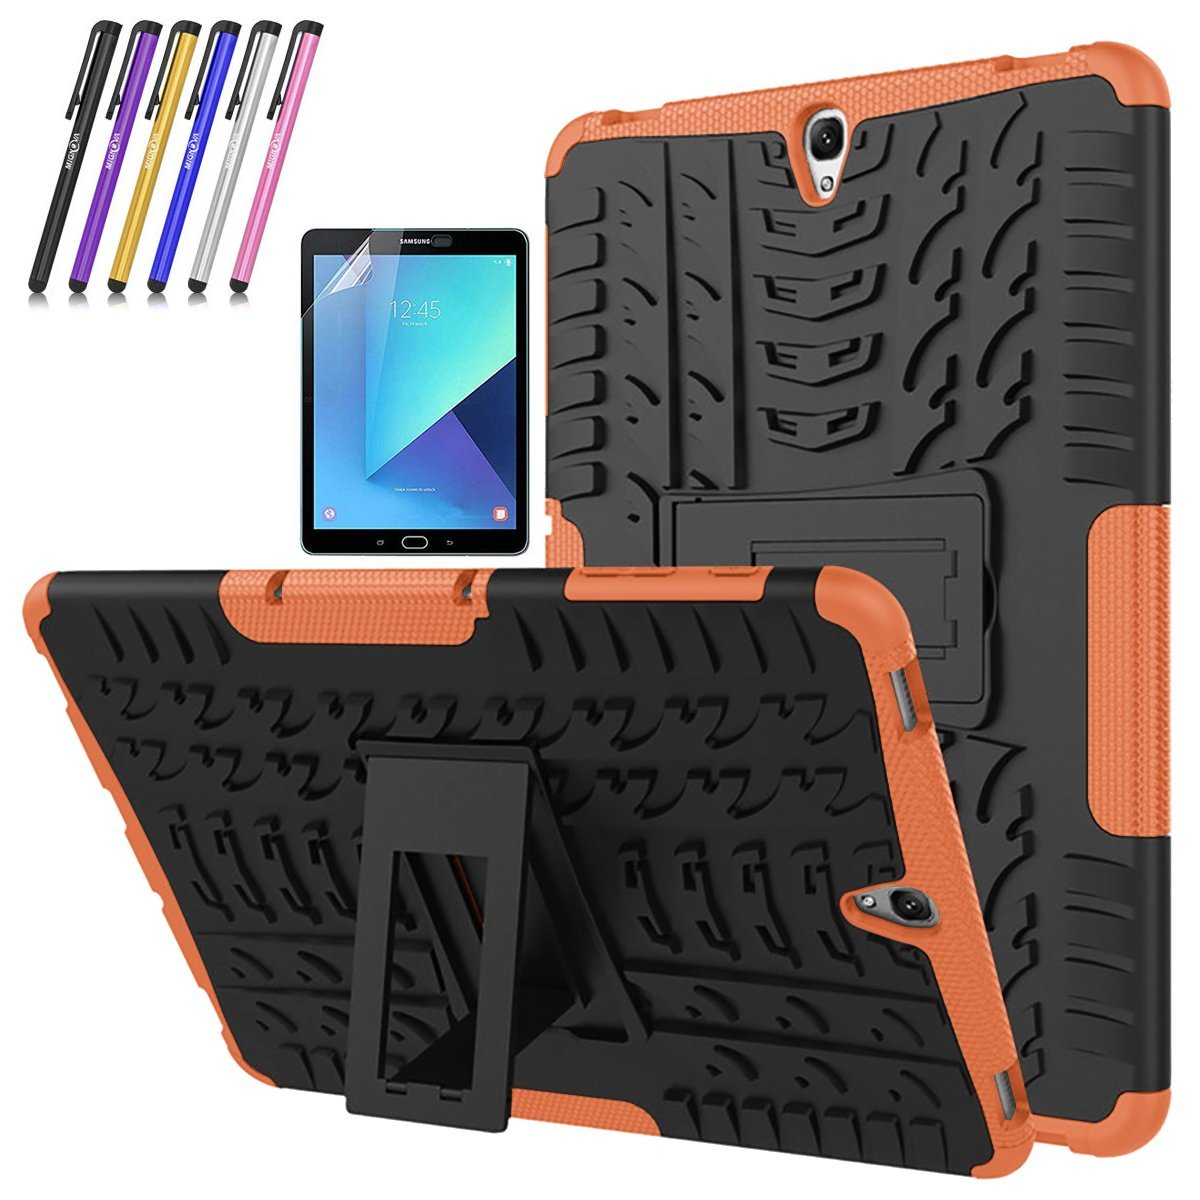 Galaxy Tab S3 9.7 Case, Mignova Hybrid Protection Cover Built-In Kickstand Skin Case For Samsung Galaxy Tab S3 9.7 inch (2017 SM-T820 T825) + Screen Protector Film and Stylus Pen (Purple)